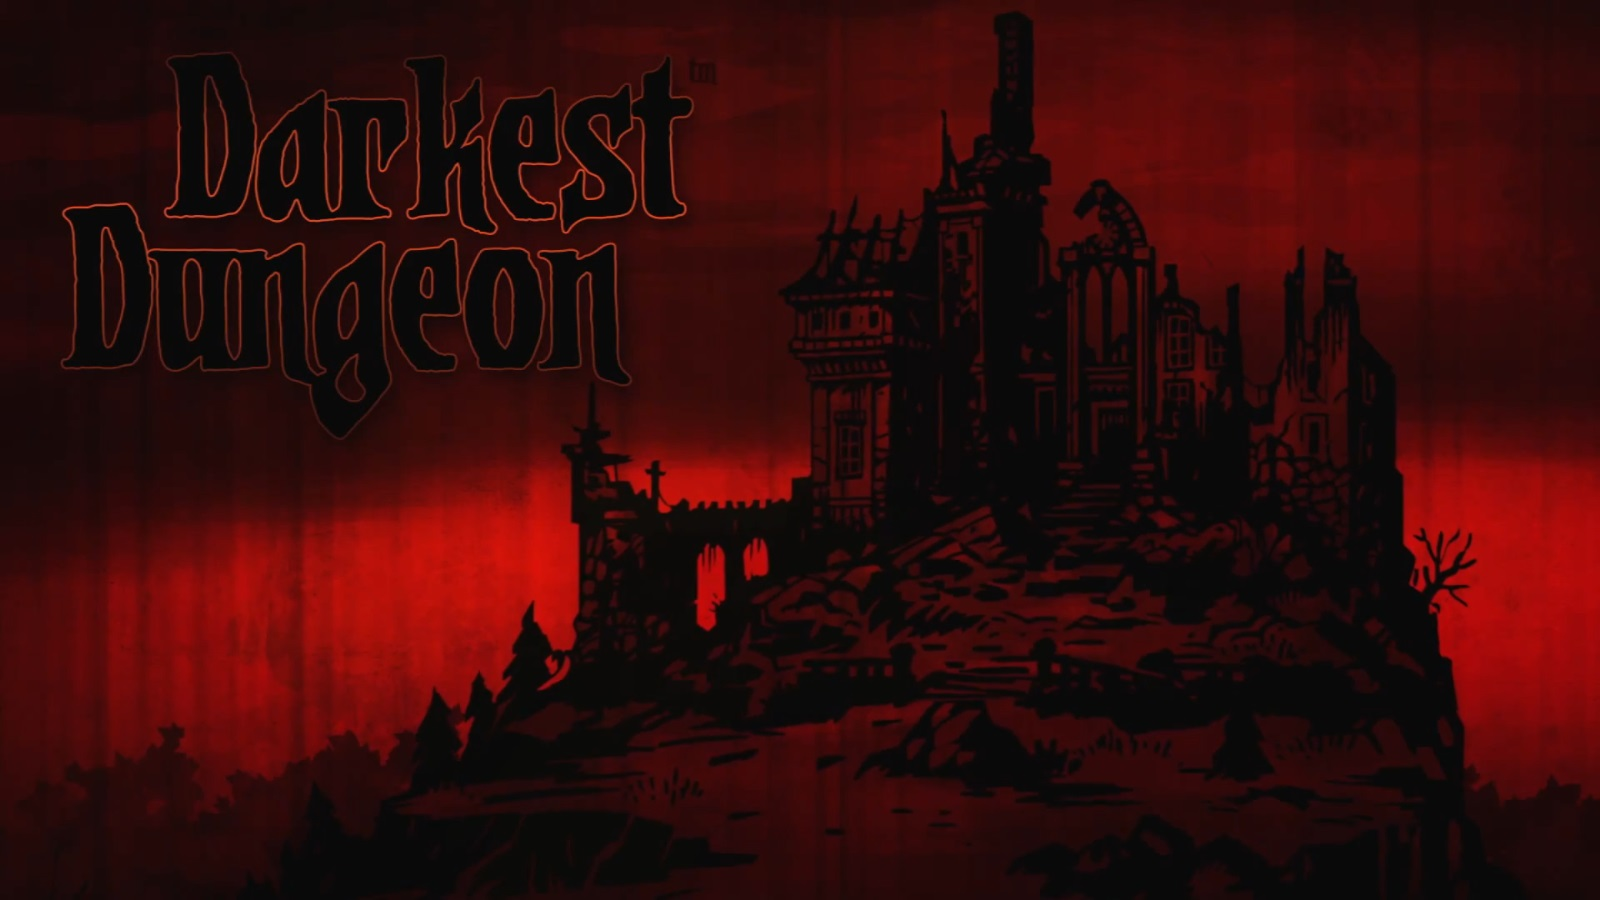 Wallpaper Backgrounds Fall Darkest Dungeon Review There S No Hope In This Hell But